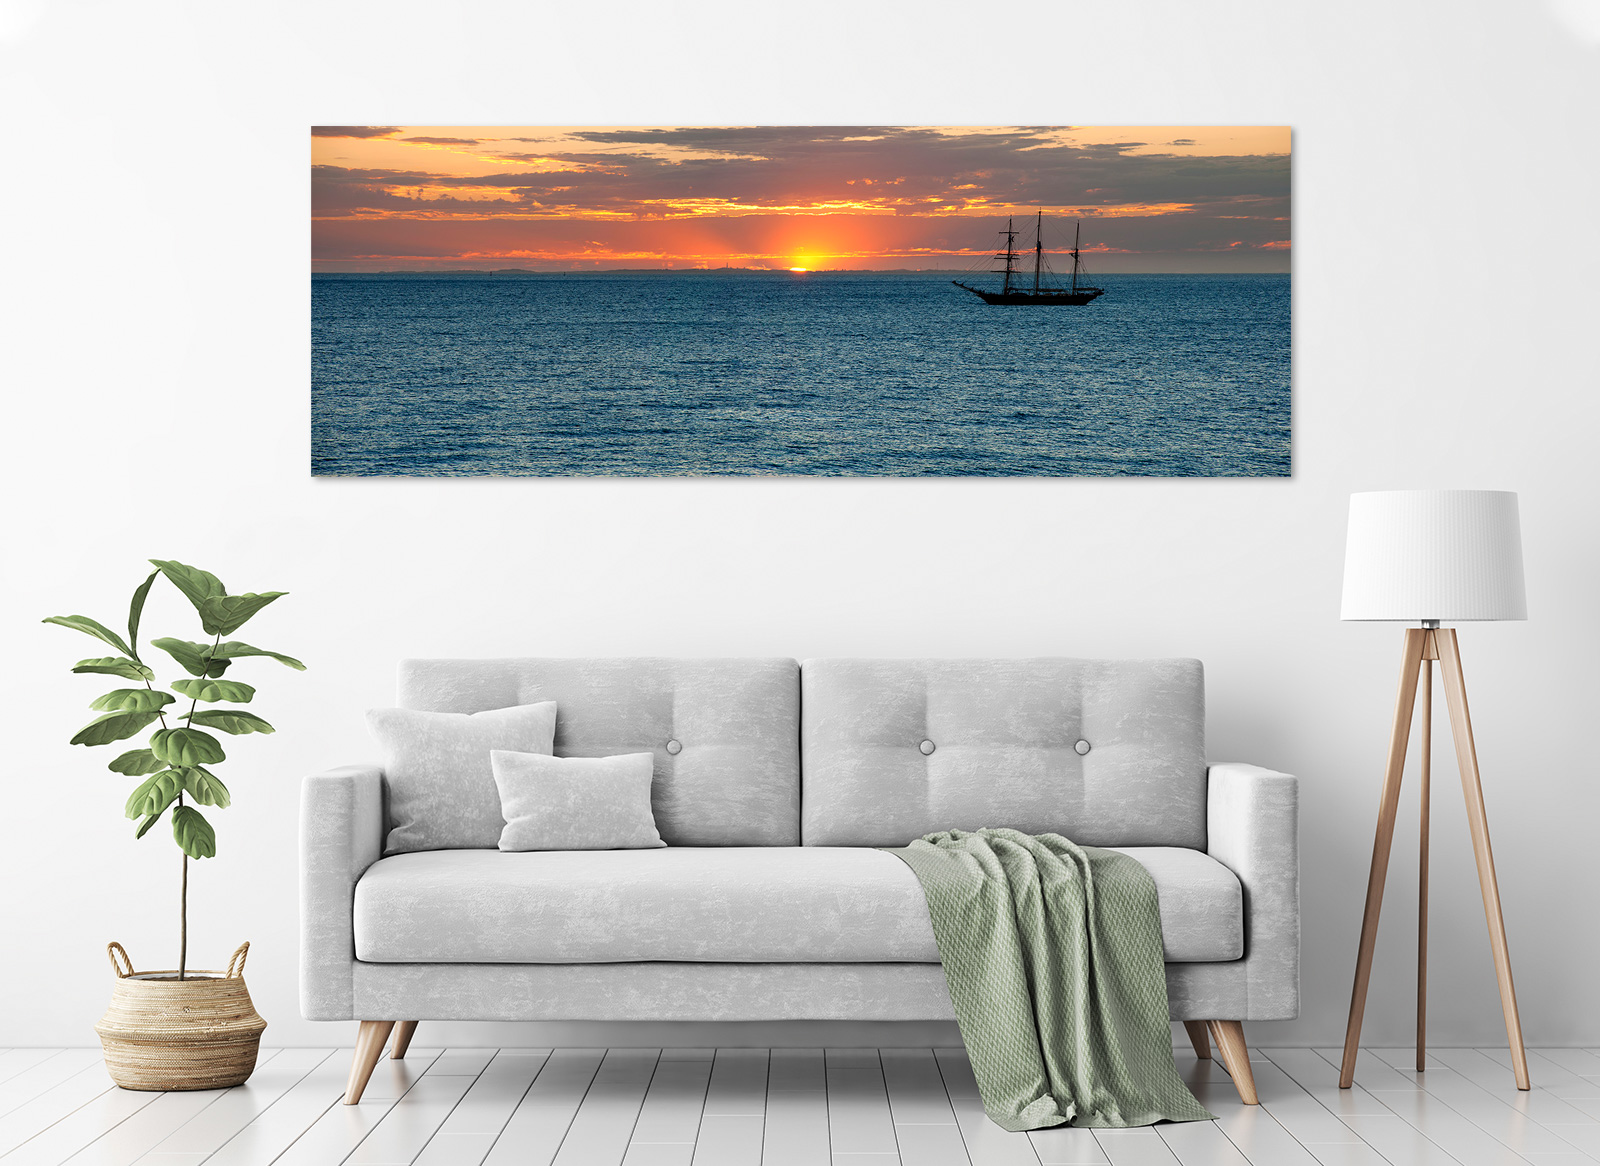 Jason Mazur - 'The Leeuwin and Rottnest Island 006' in a room